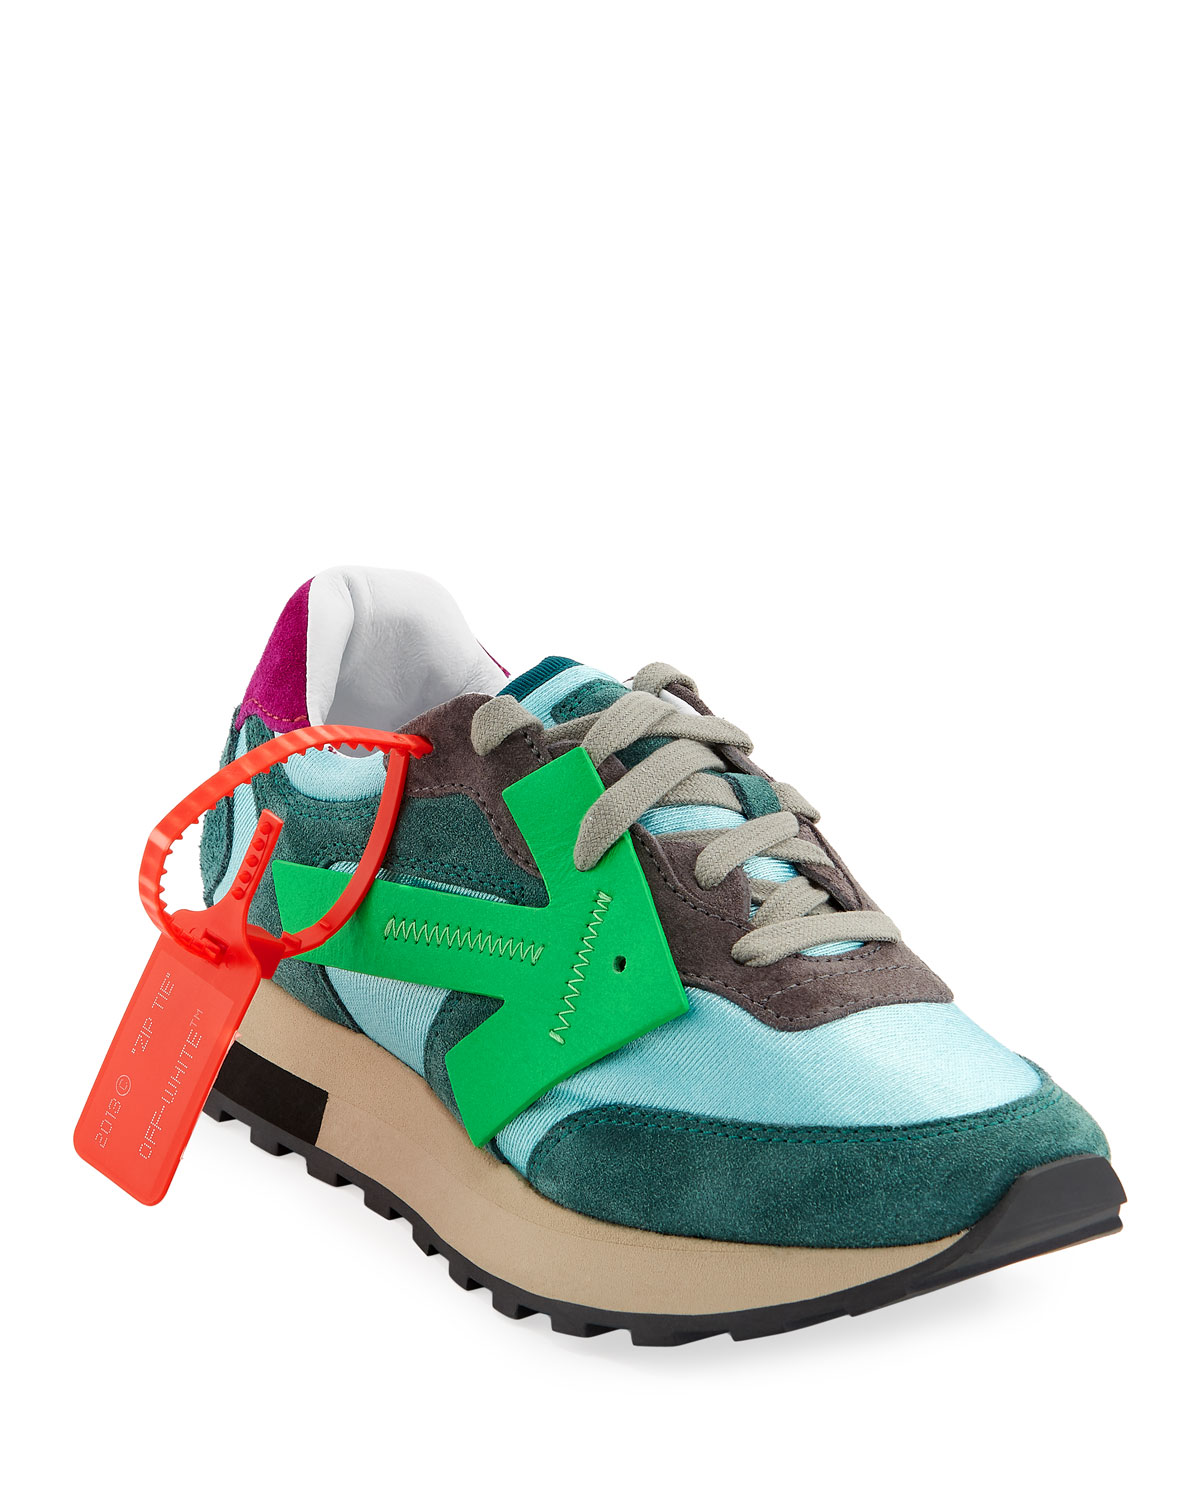 HG Runner Brilliant Colorblock Suede Arrow Sneakers